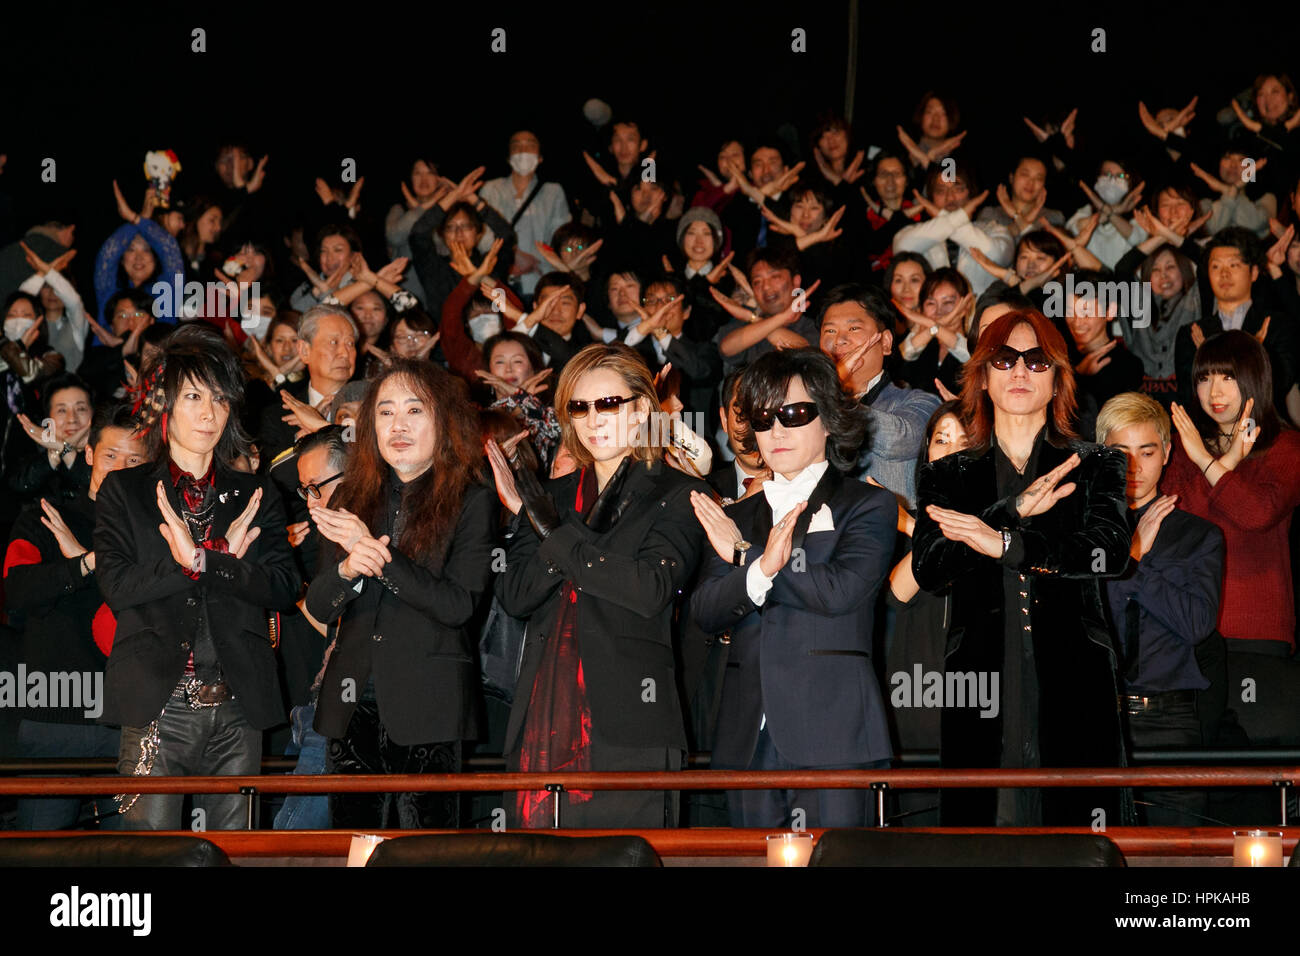 [img]https://c8.alamy.com/comp/HPKAHB/members-of-rock-band-x-japan-pose-for-cameras-with-fans-during-a-movie-HPKAHB.jpg[/img]